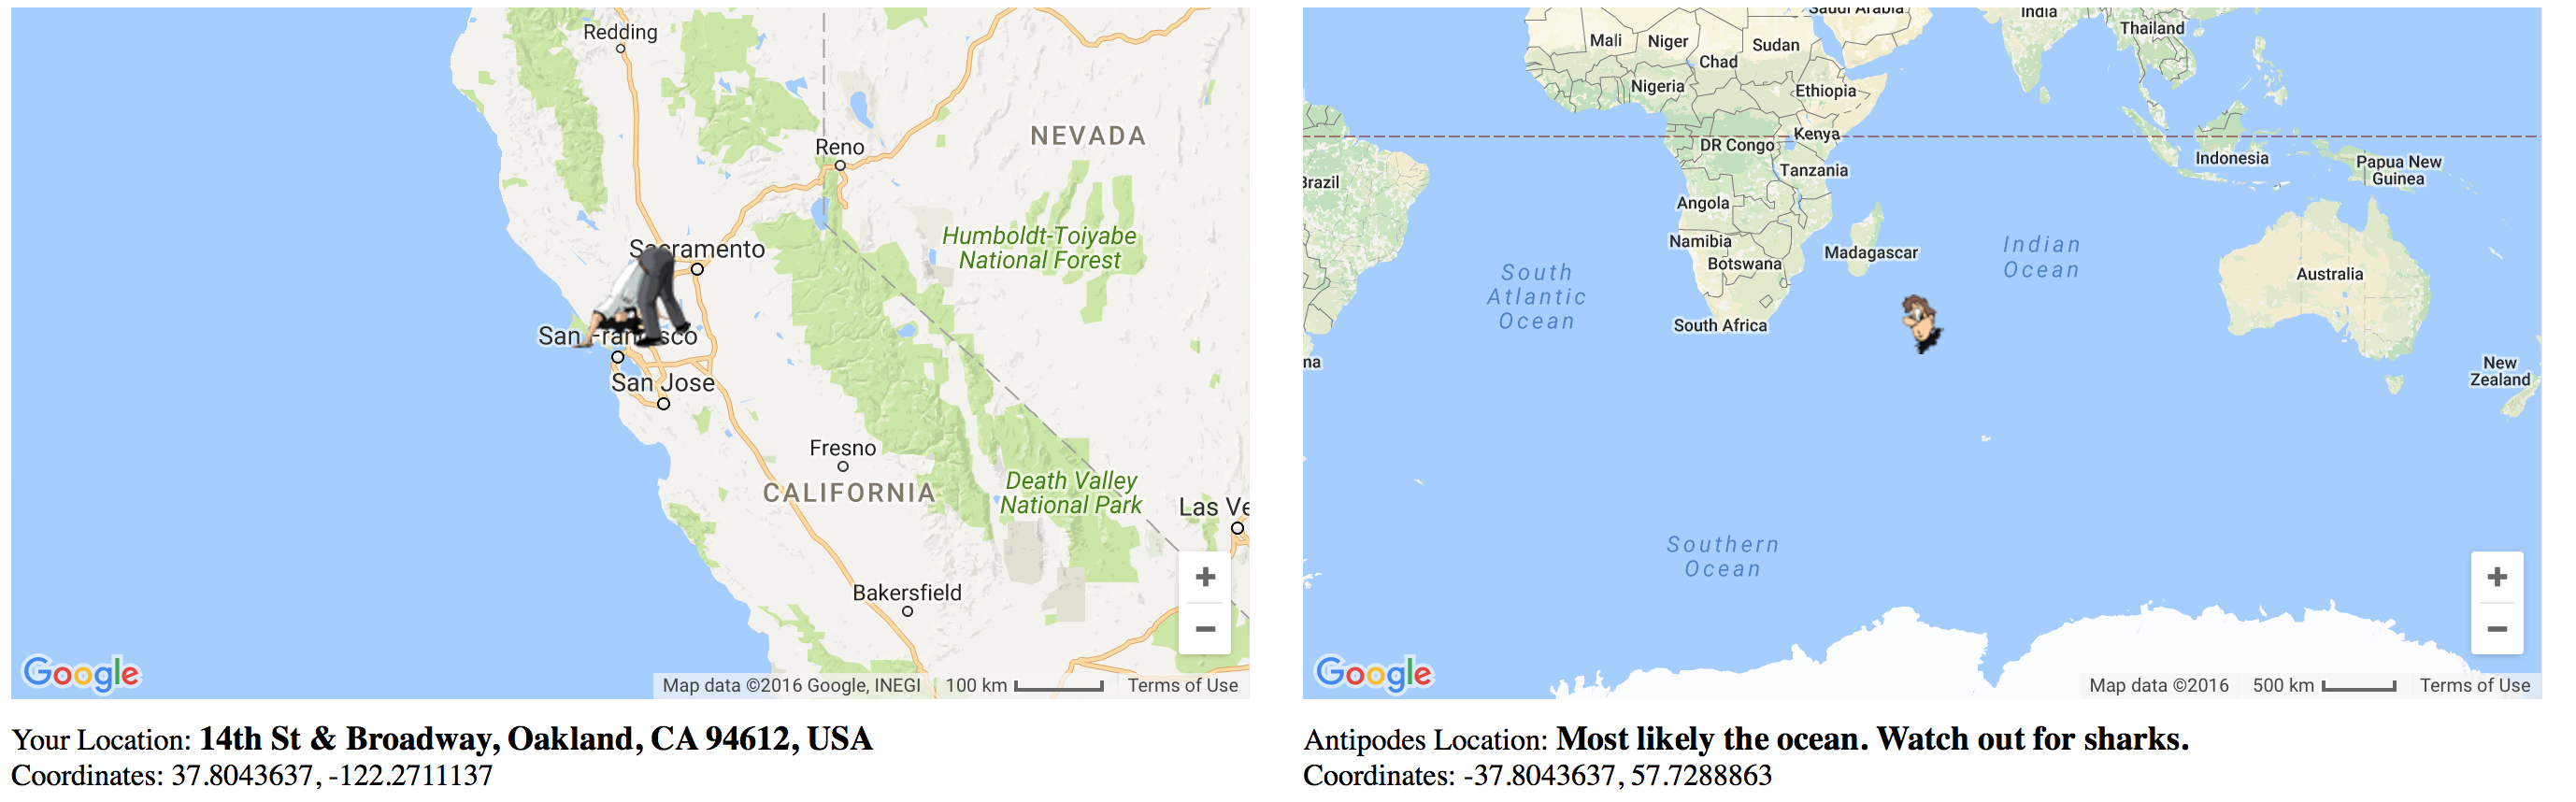 Different Scales antipodes.png